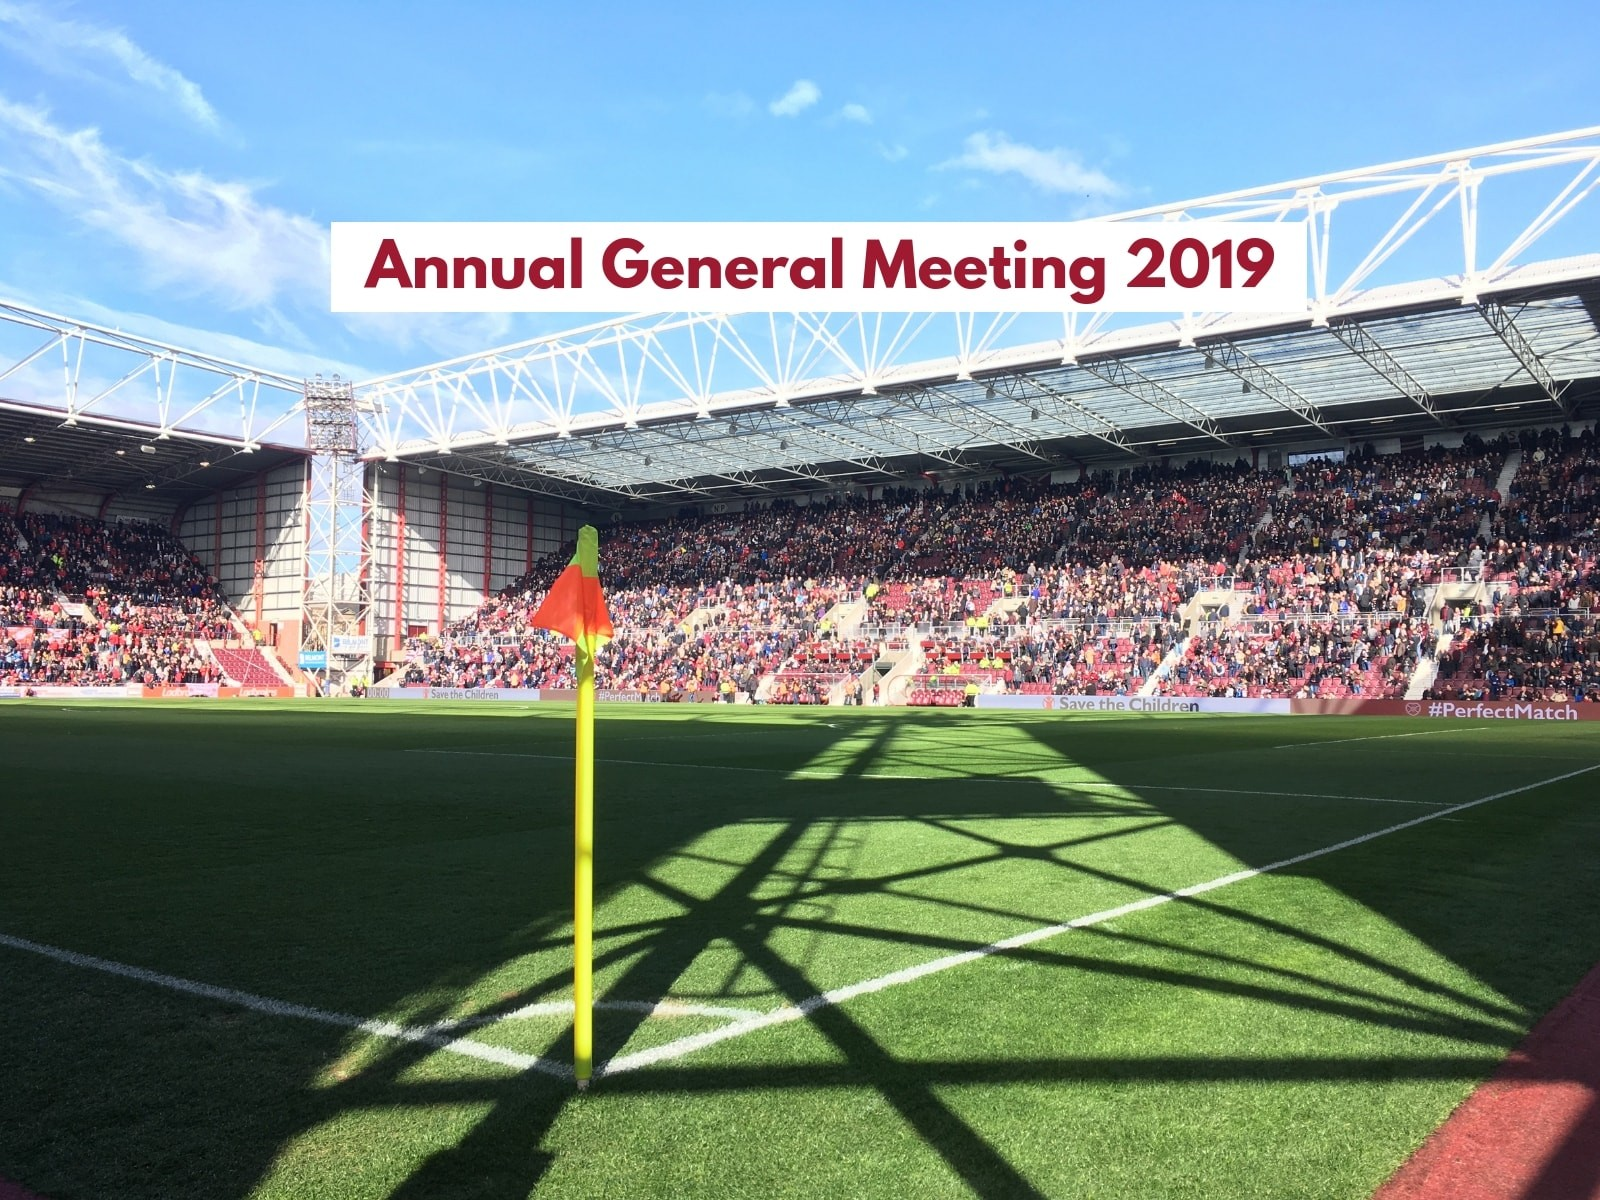 » Save the date: Our 2019 Annual General Meeting on 8 October